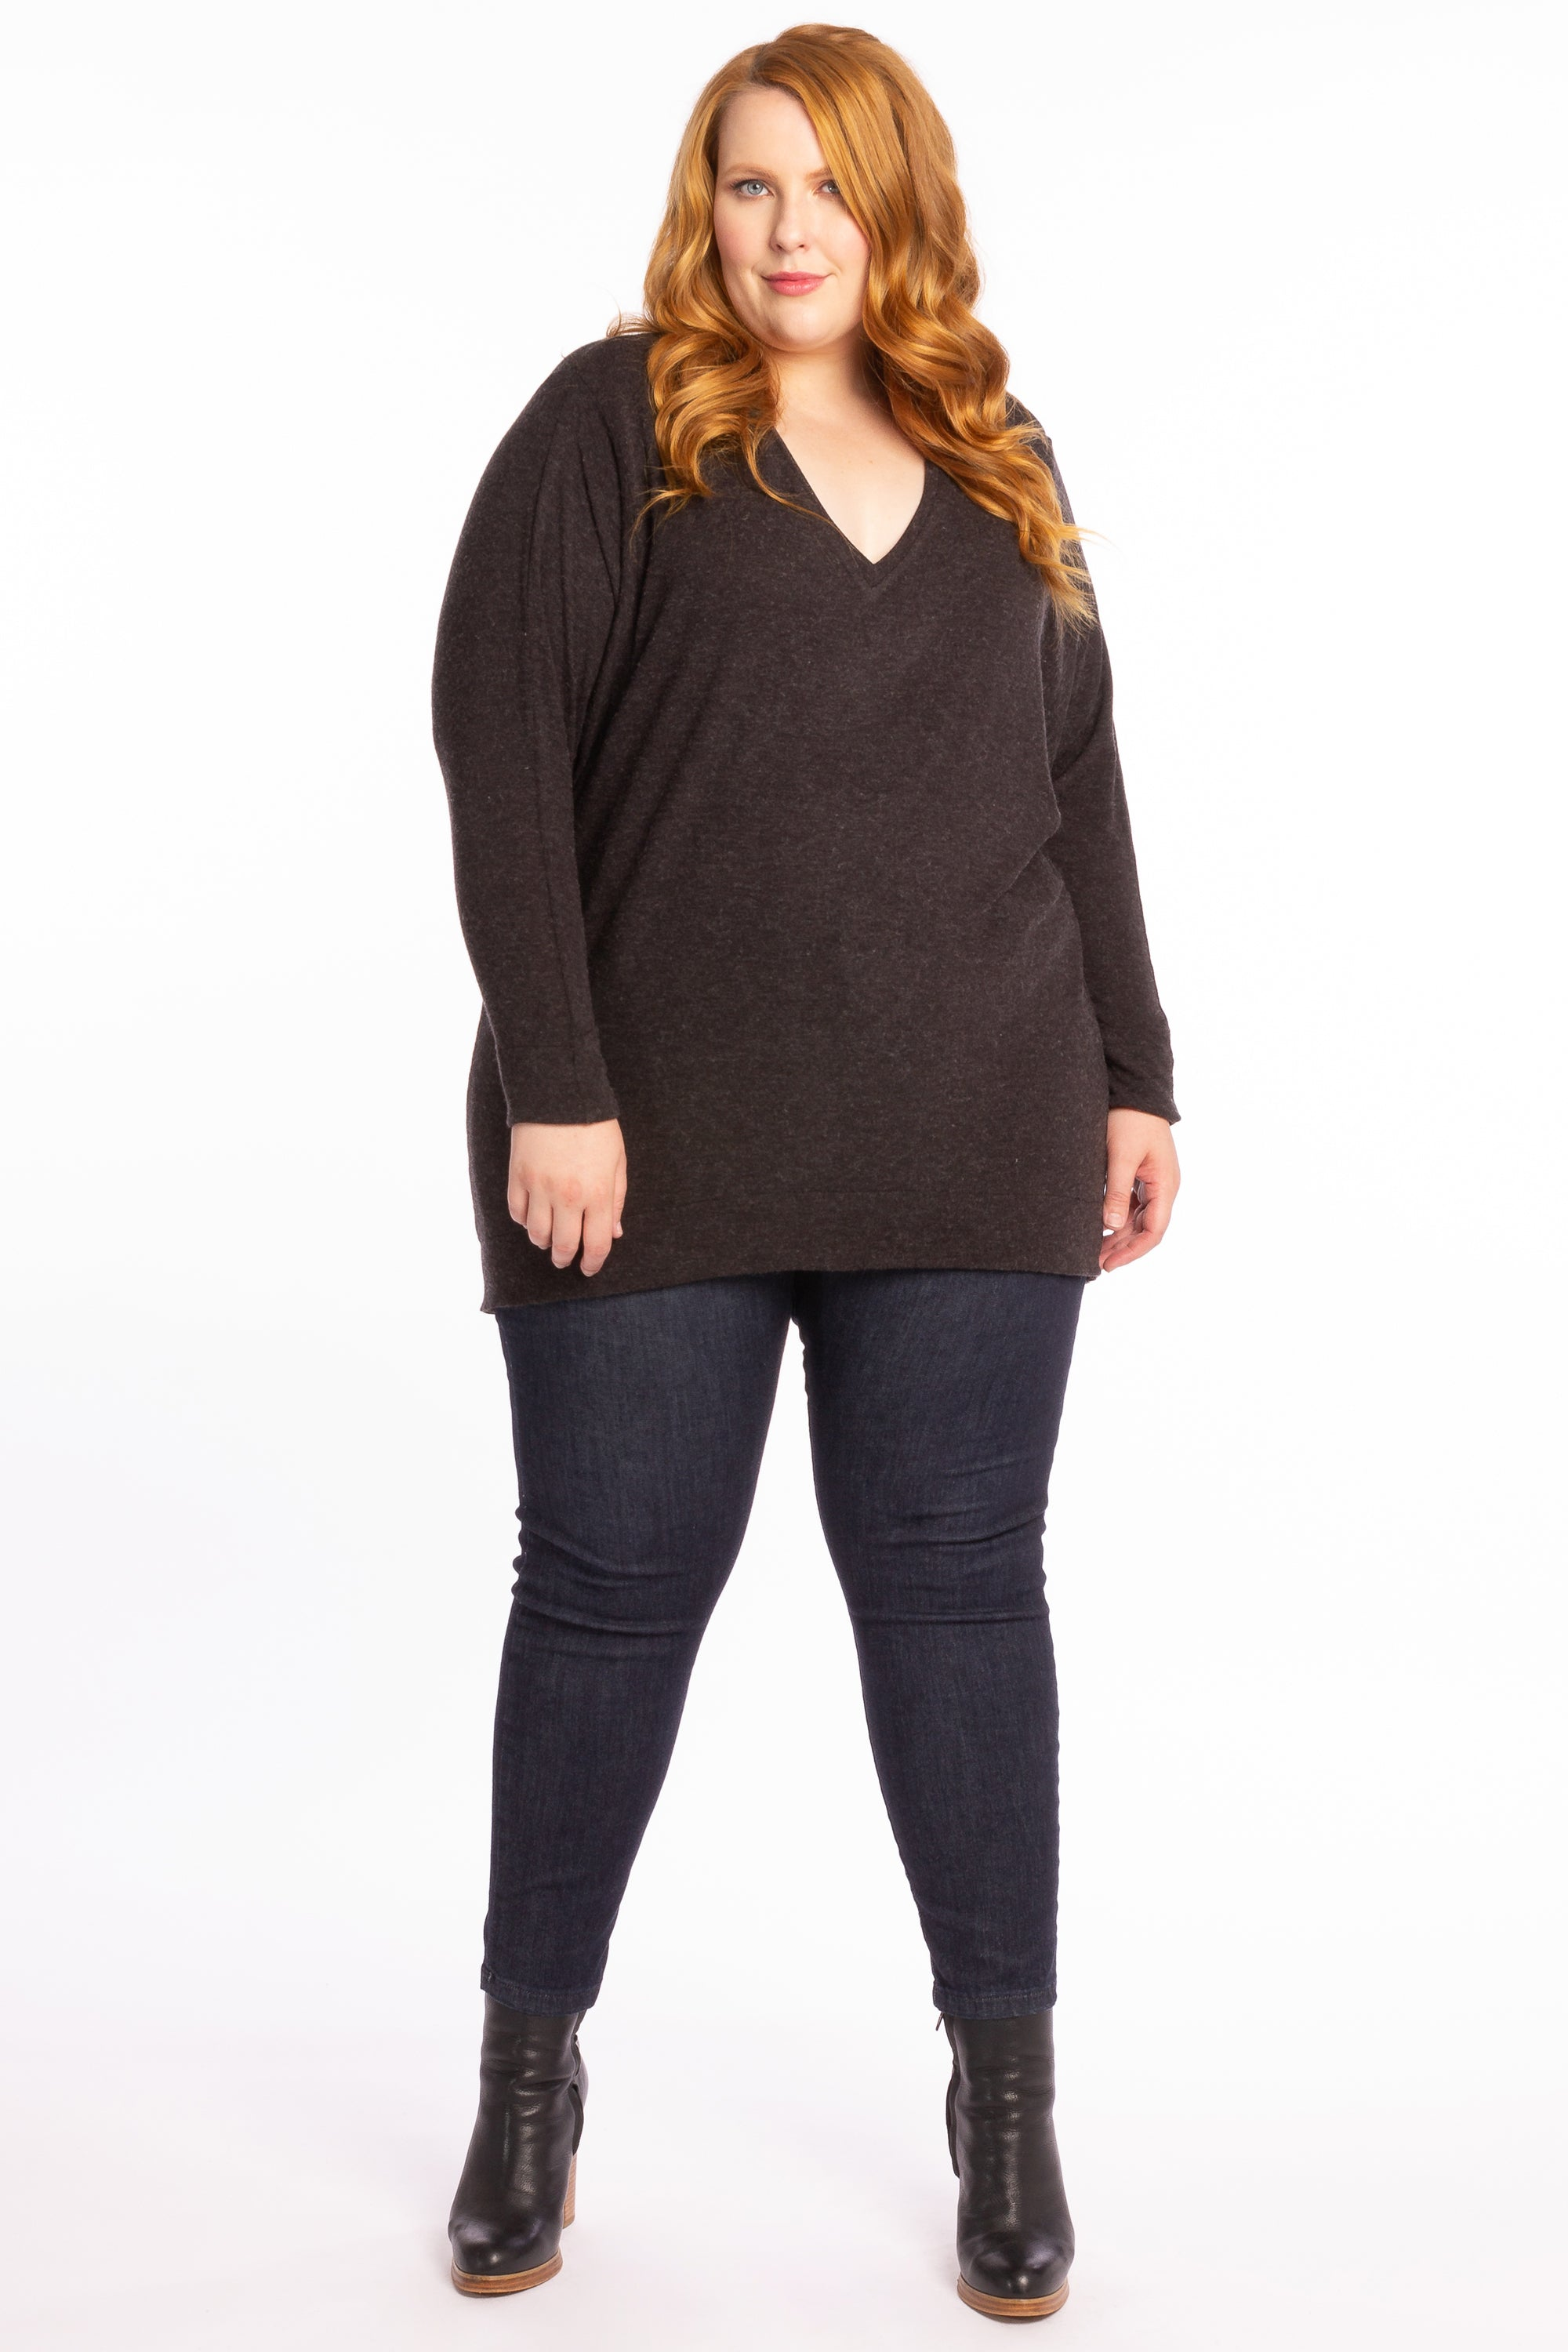 We Can Be Heroes Sweater - Charcoal Marle